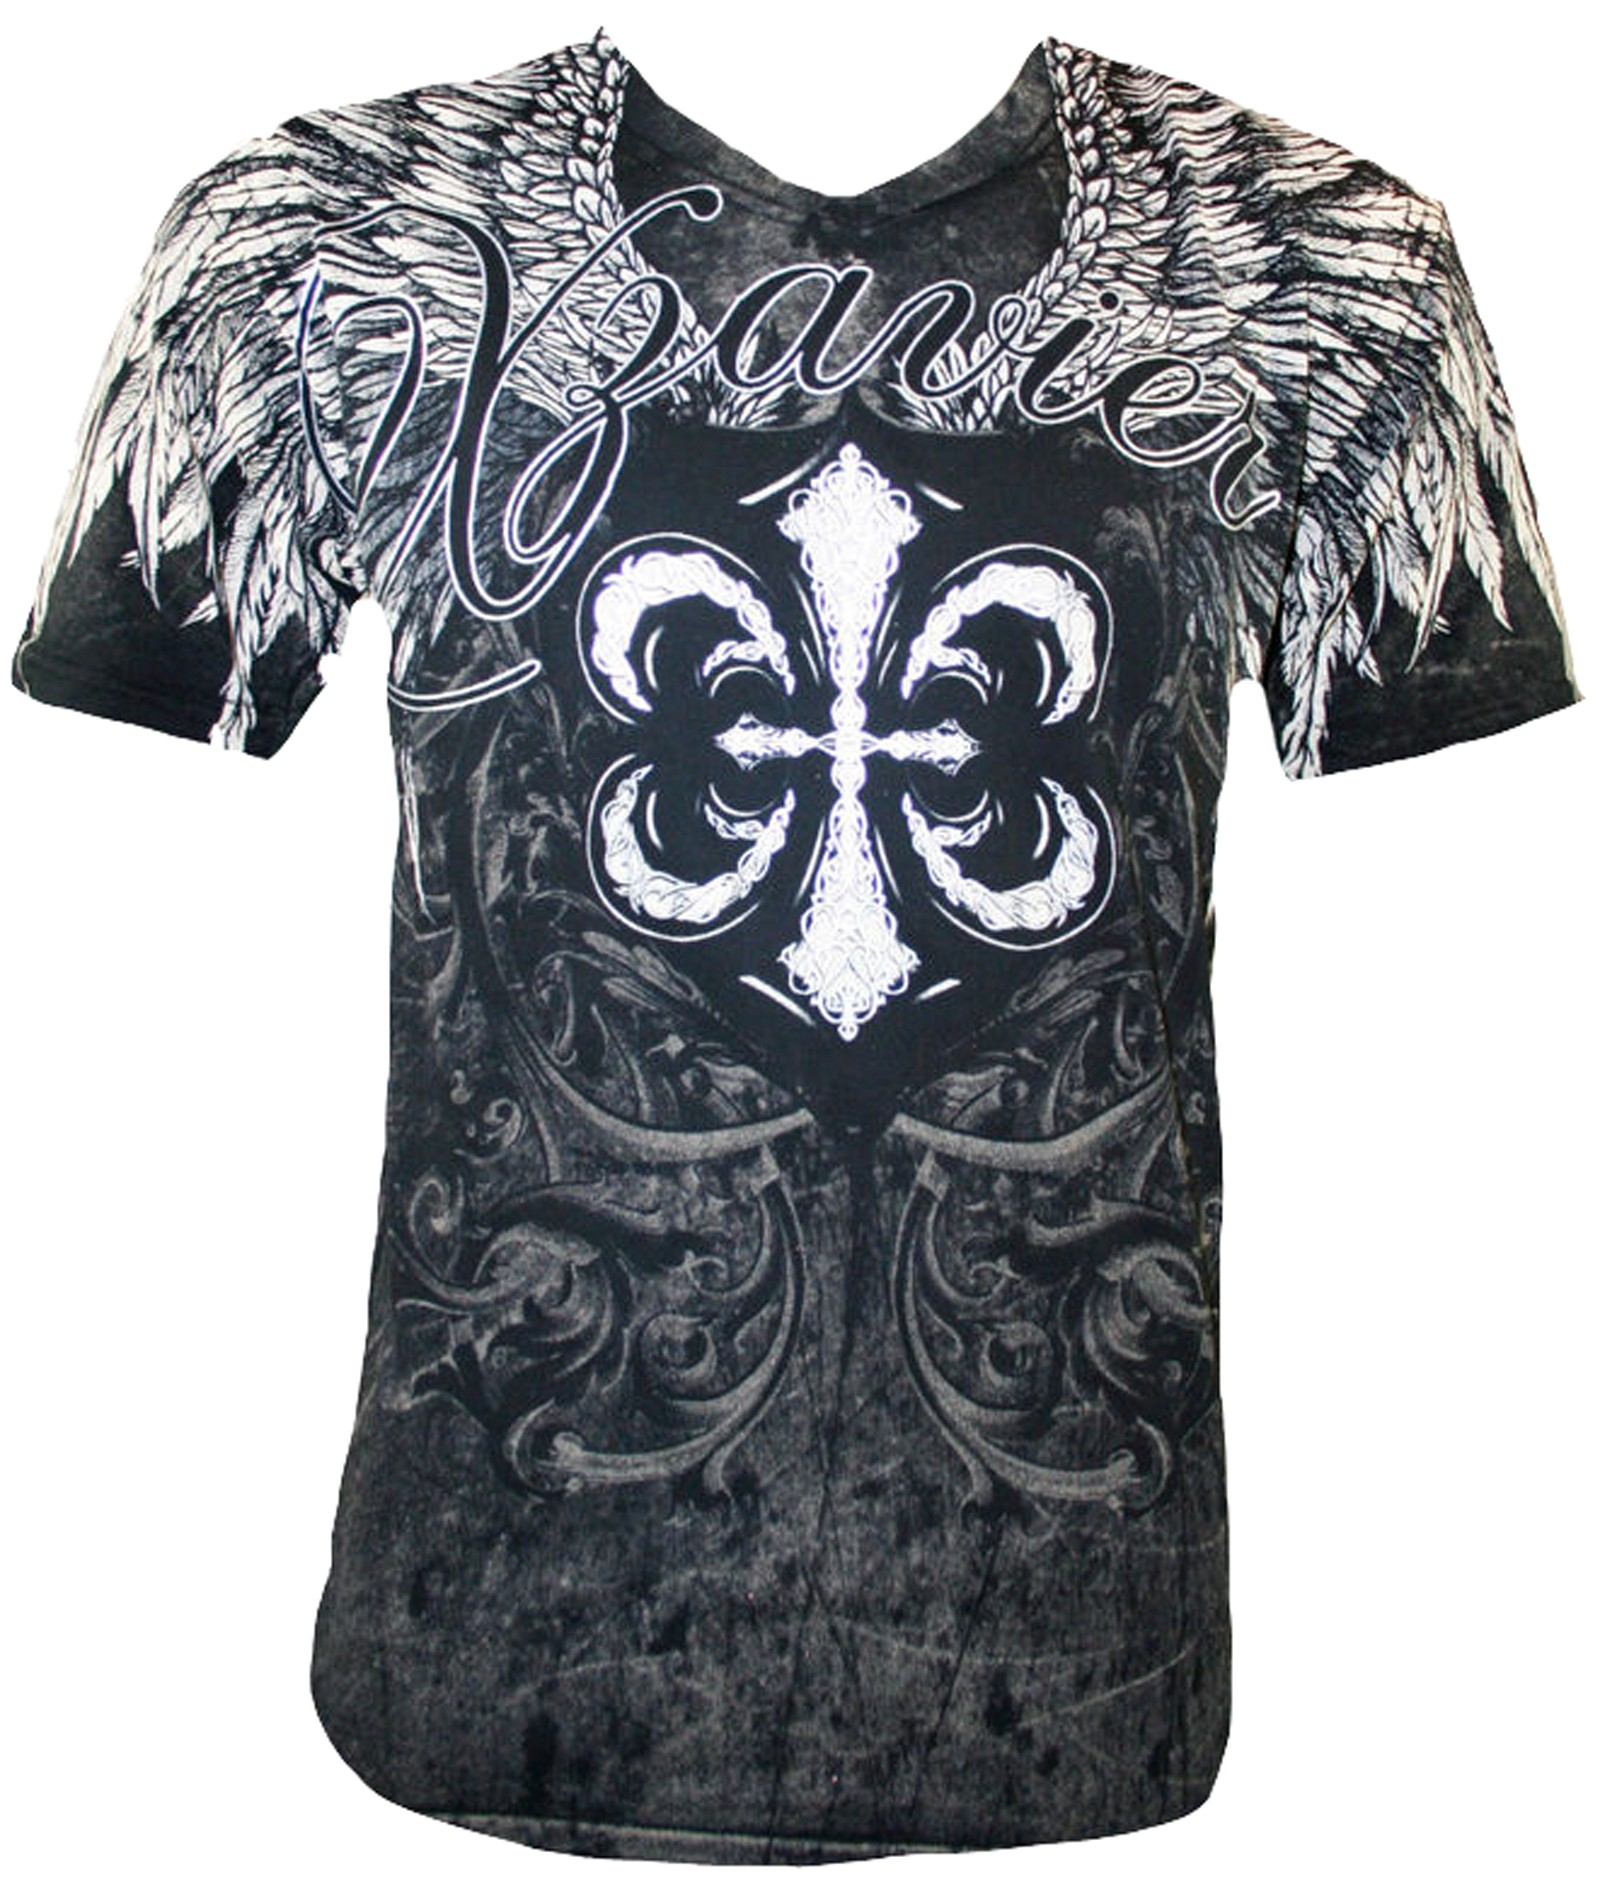 Xzavier - Wings T-Shirt Front